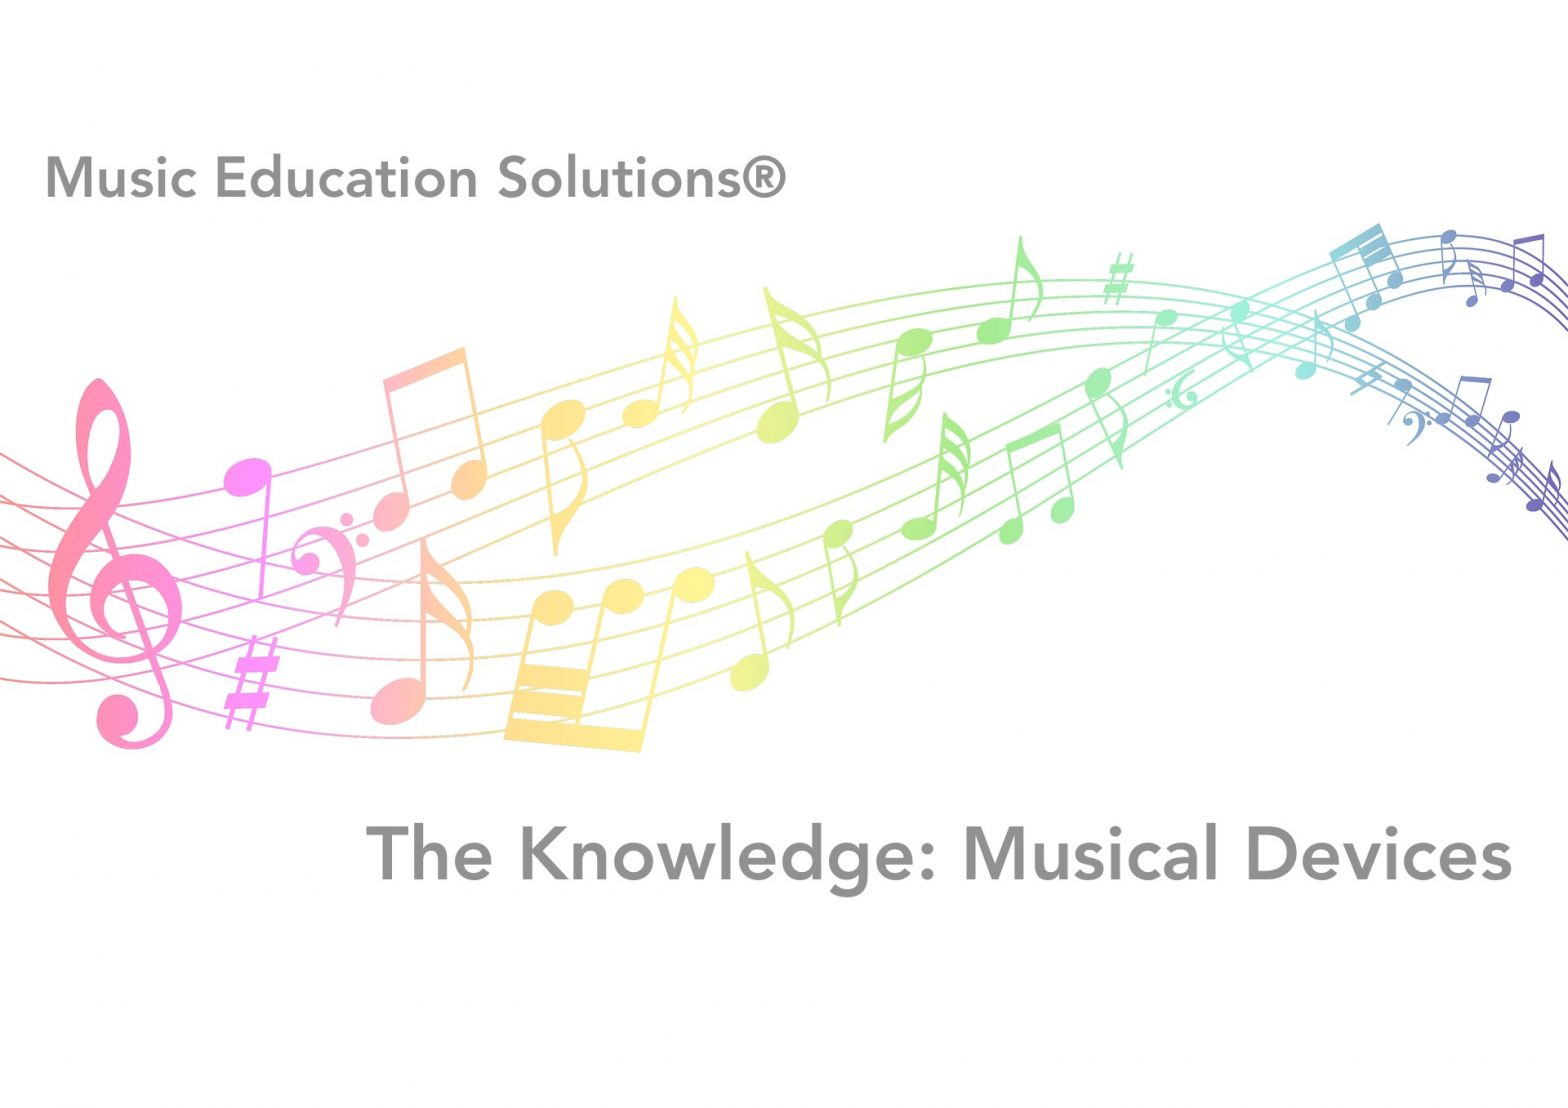 The Knowledge: Musical Devices